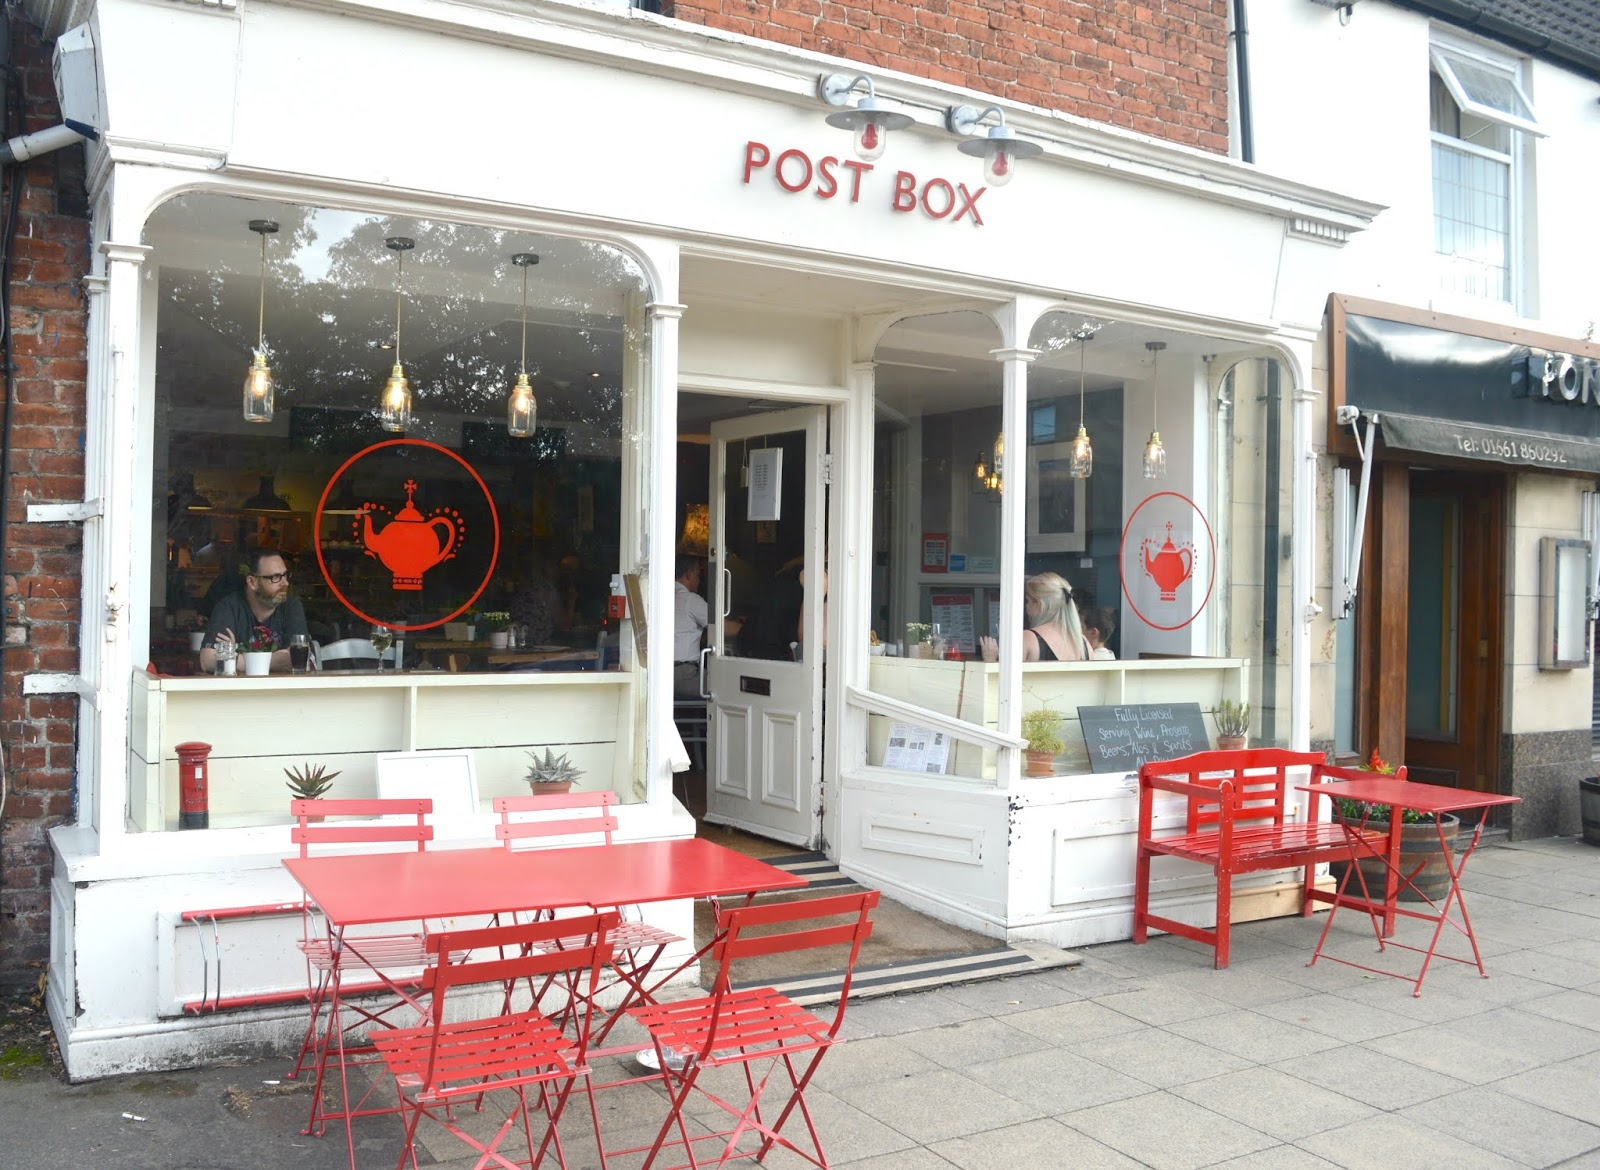 Night Cafe at Post Box, Ponteland